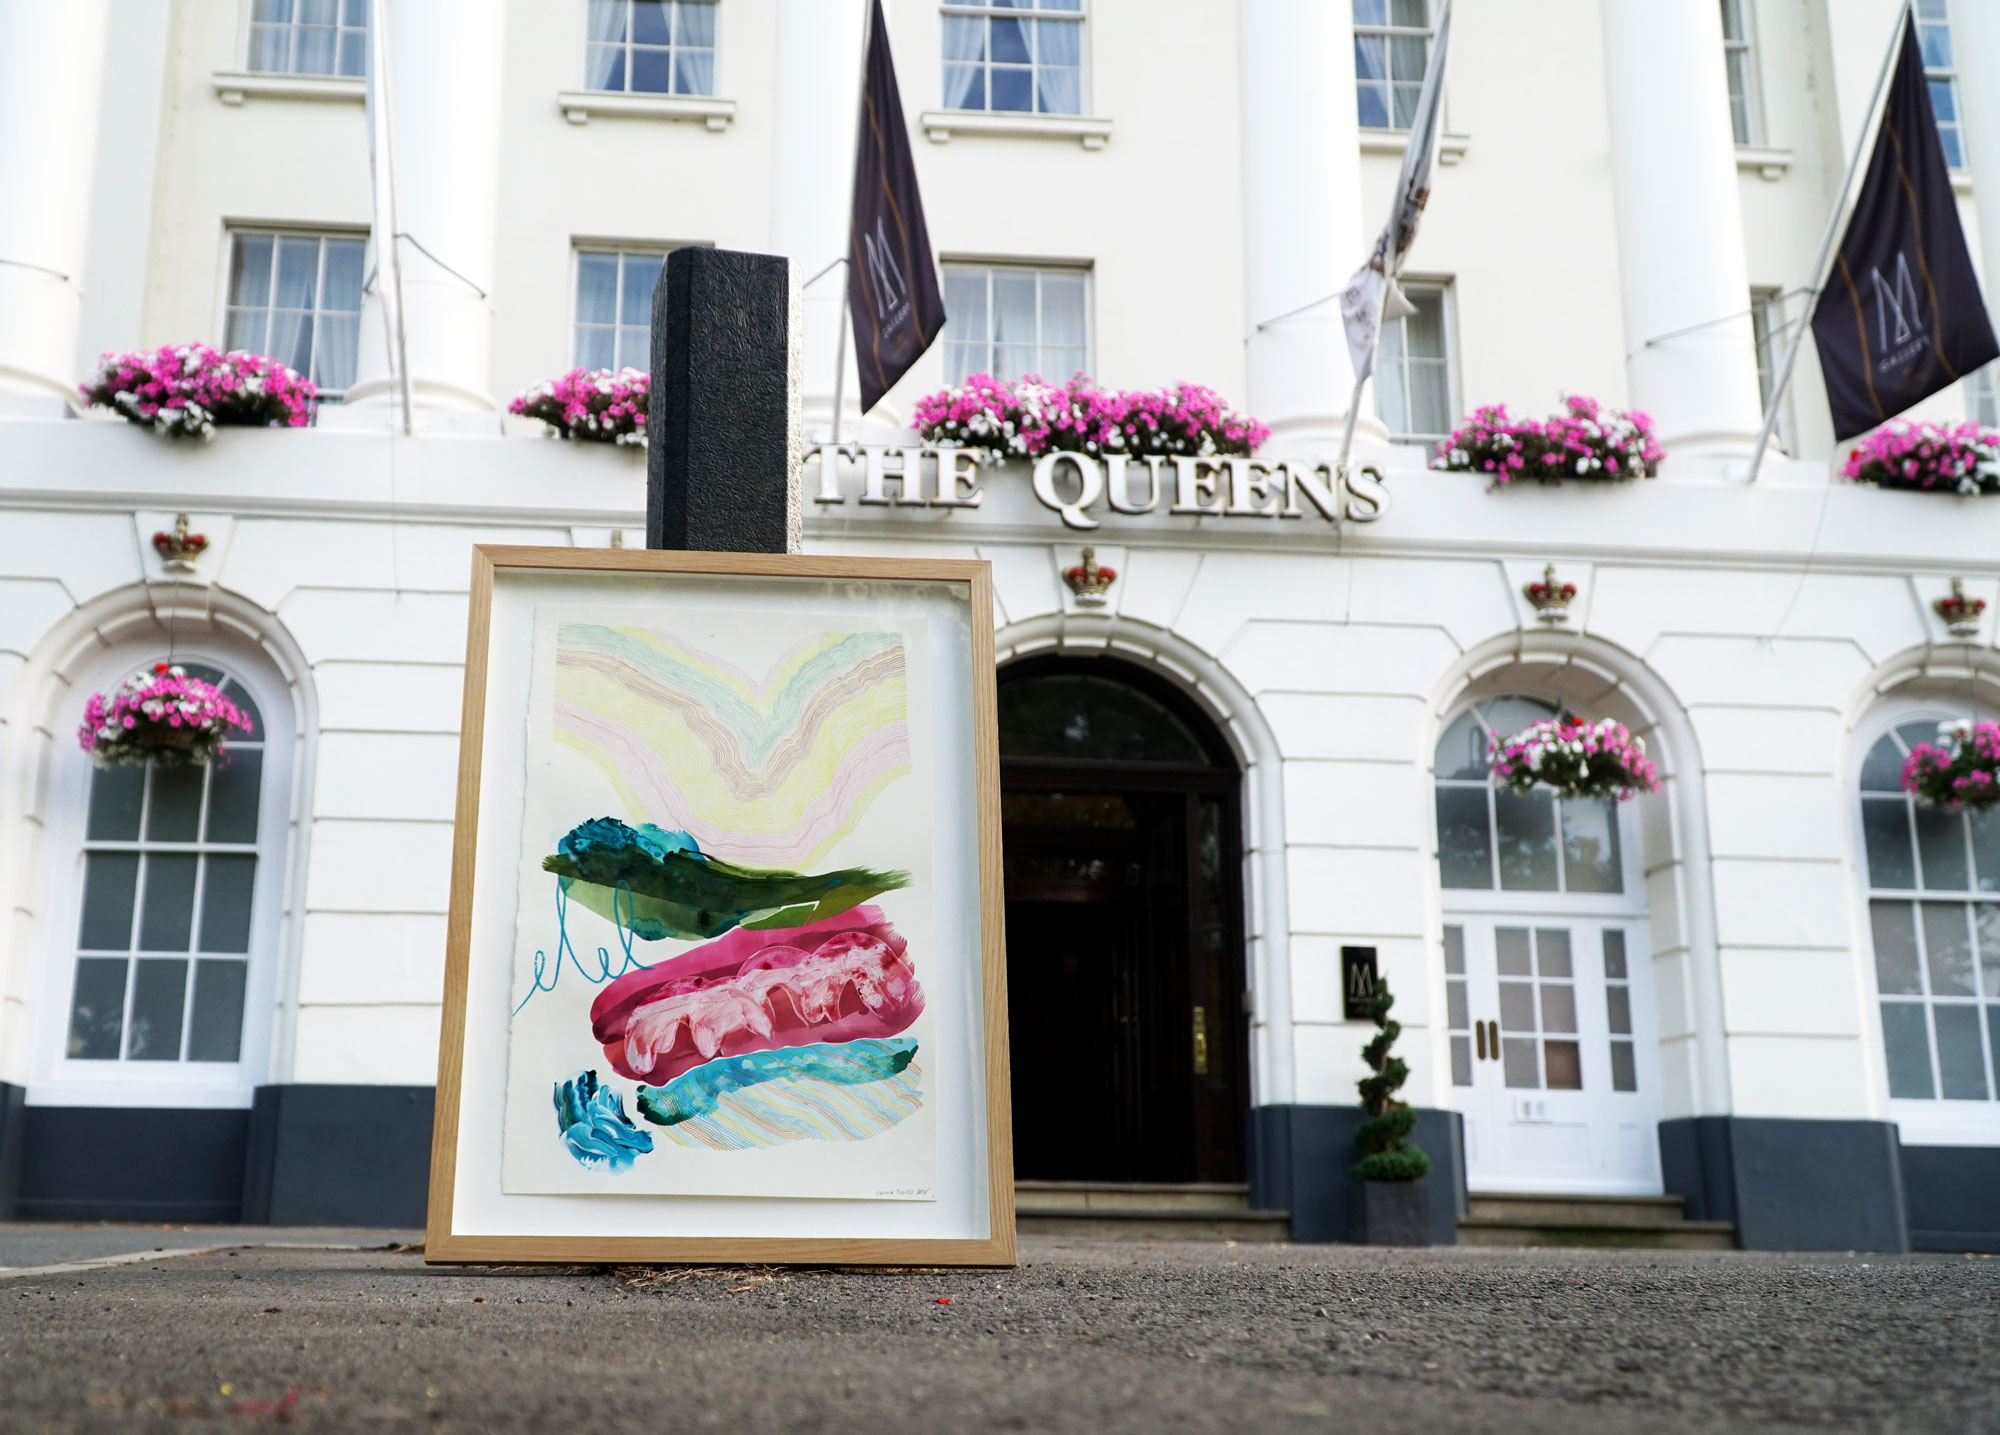 Queens Hotel and painting